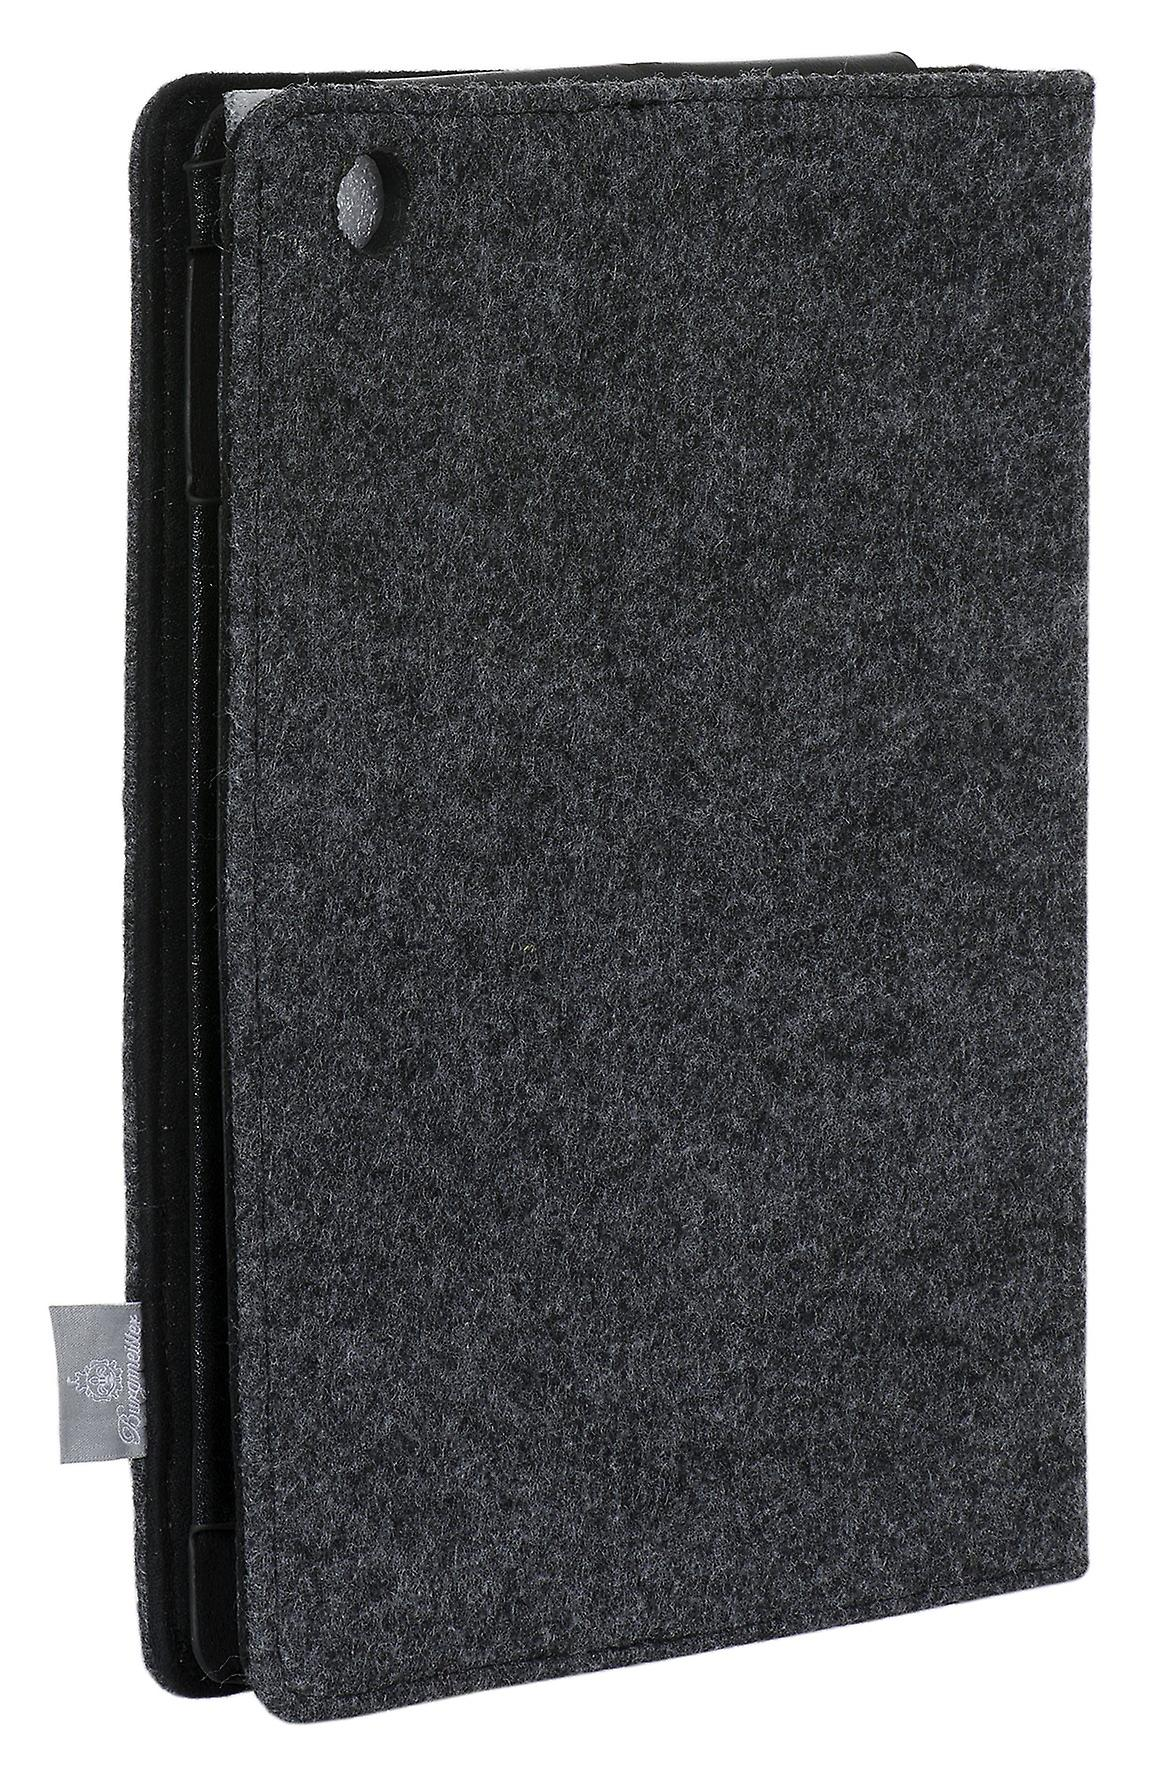 Burgmeister ladies/gents Ipad holder felt, HBM3025-167